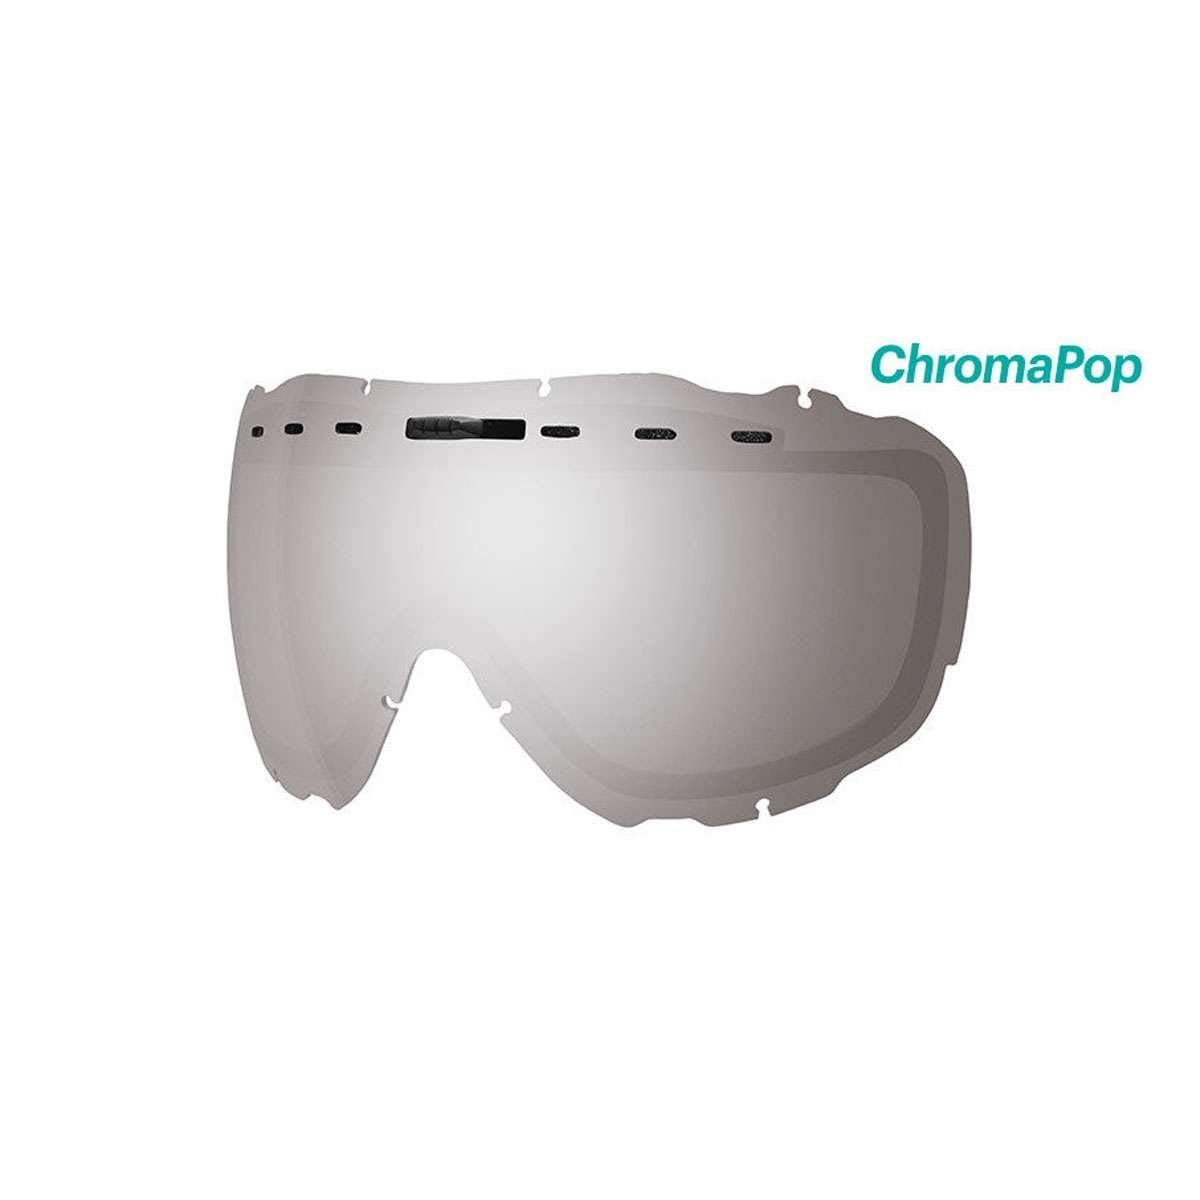 eb7b1eab94 Get Quotations · Smith Optics Prophecy OTG Adult Replacement Lense Snow  Goggles Accessories - Chromapop Sun Platinum Mirror